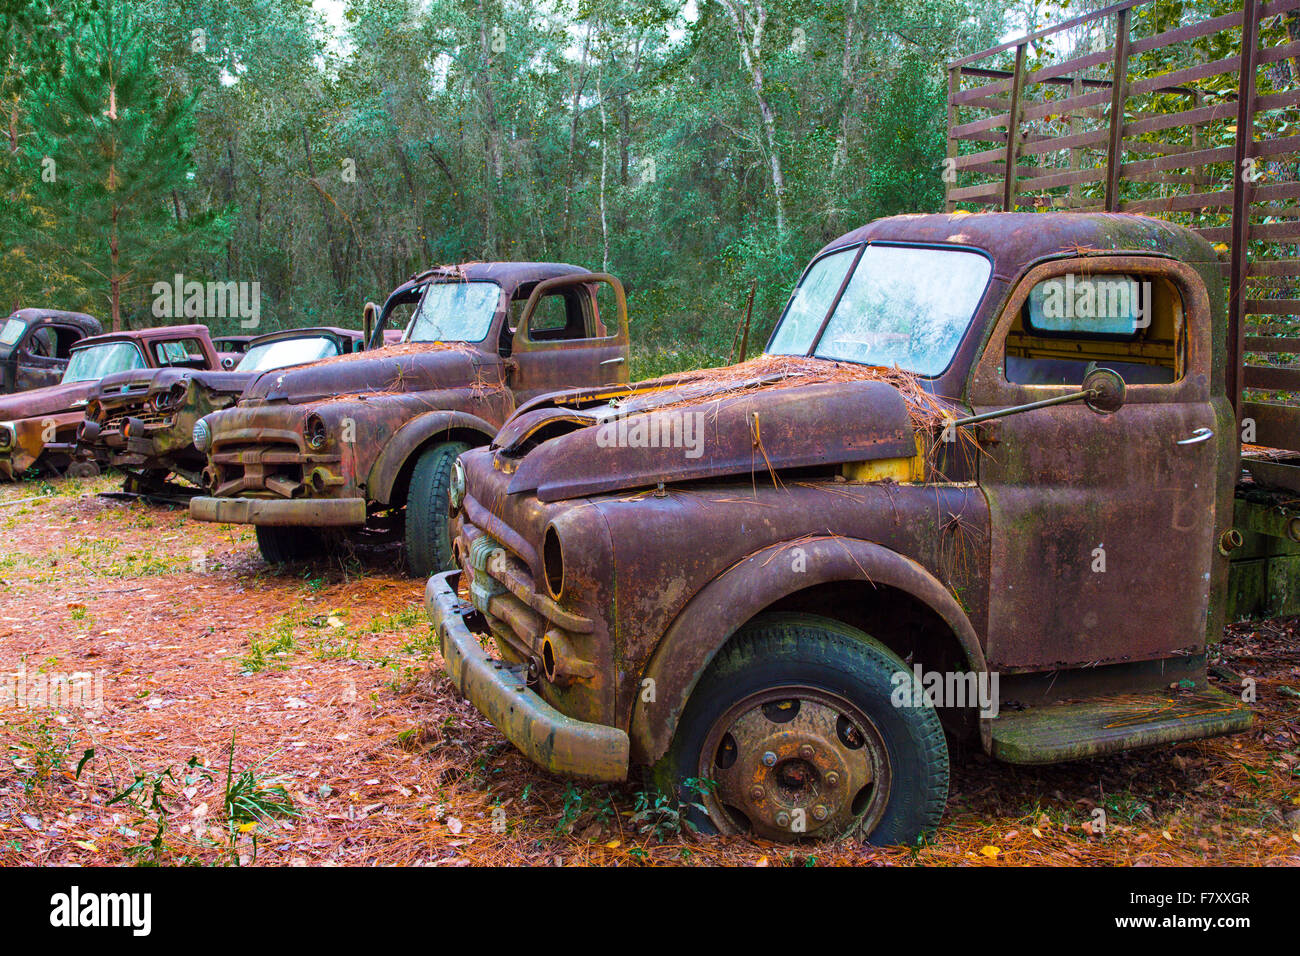 Old rusted abandoned trucks and cars Stock Photo: 90946039 - Alamy